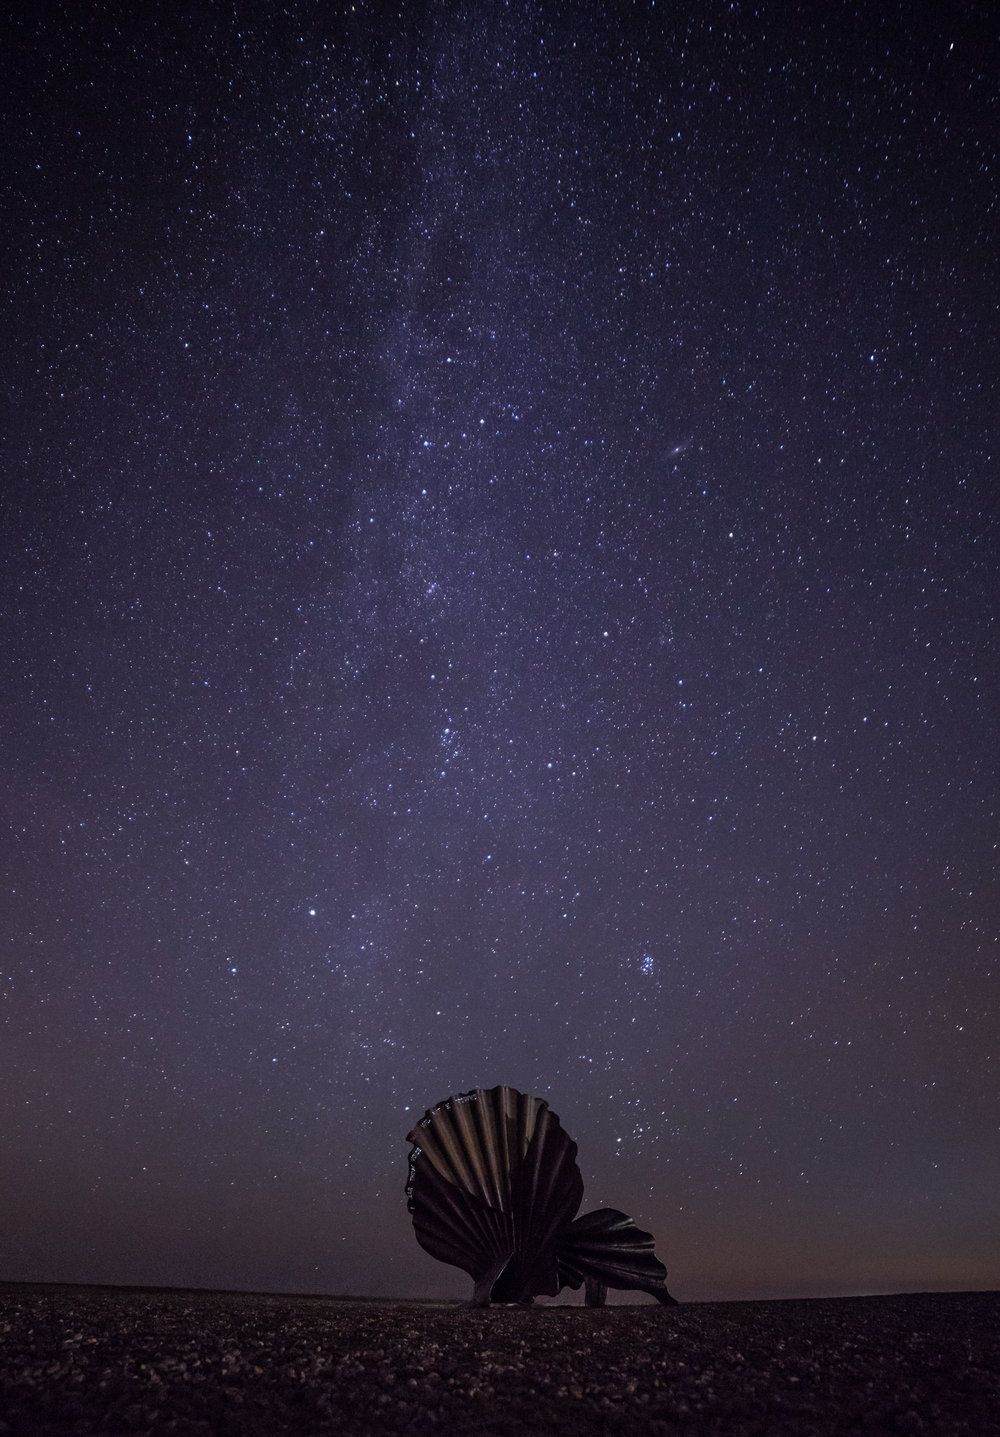 The scallop at night - Aldeburgh, Suffolk